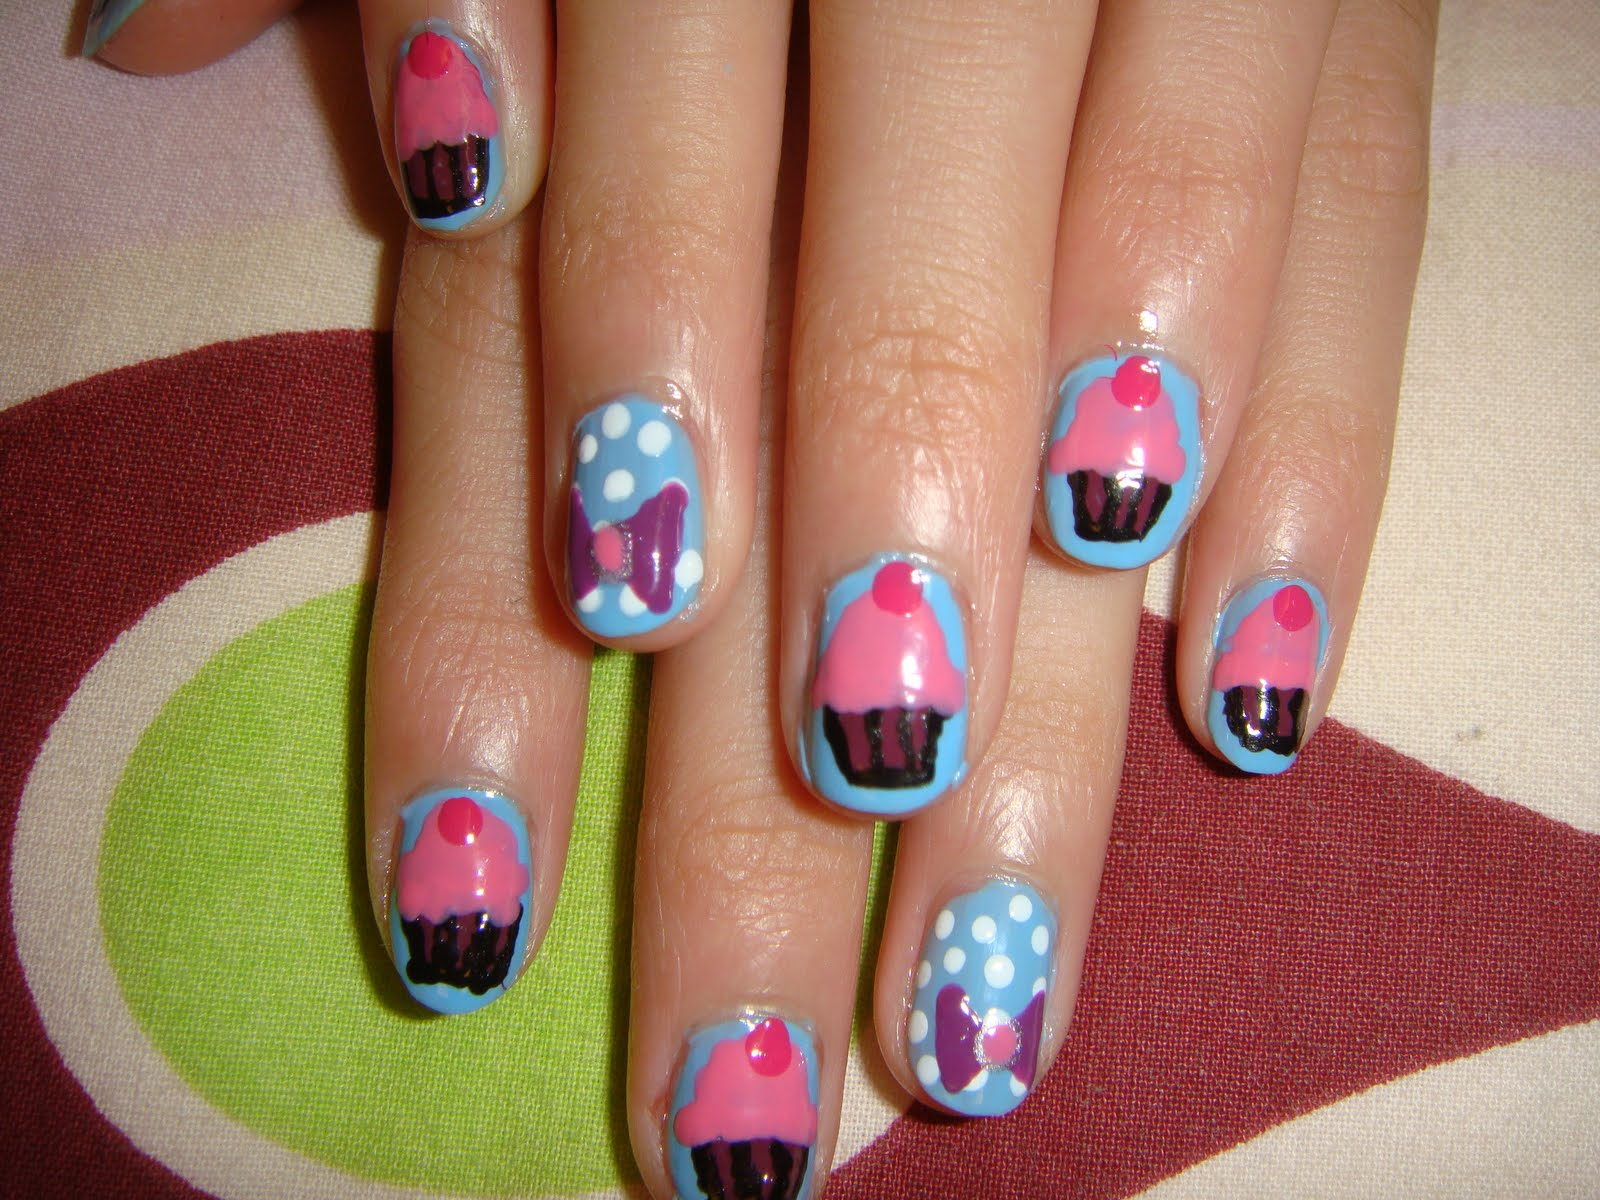 cupcake nail designs ideas-9